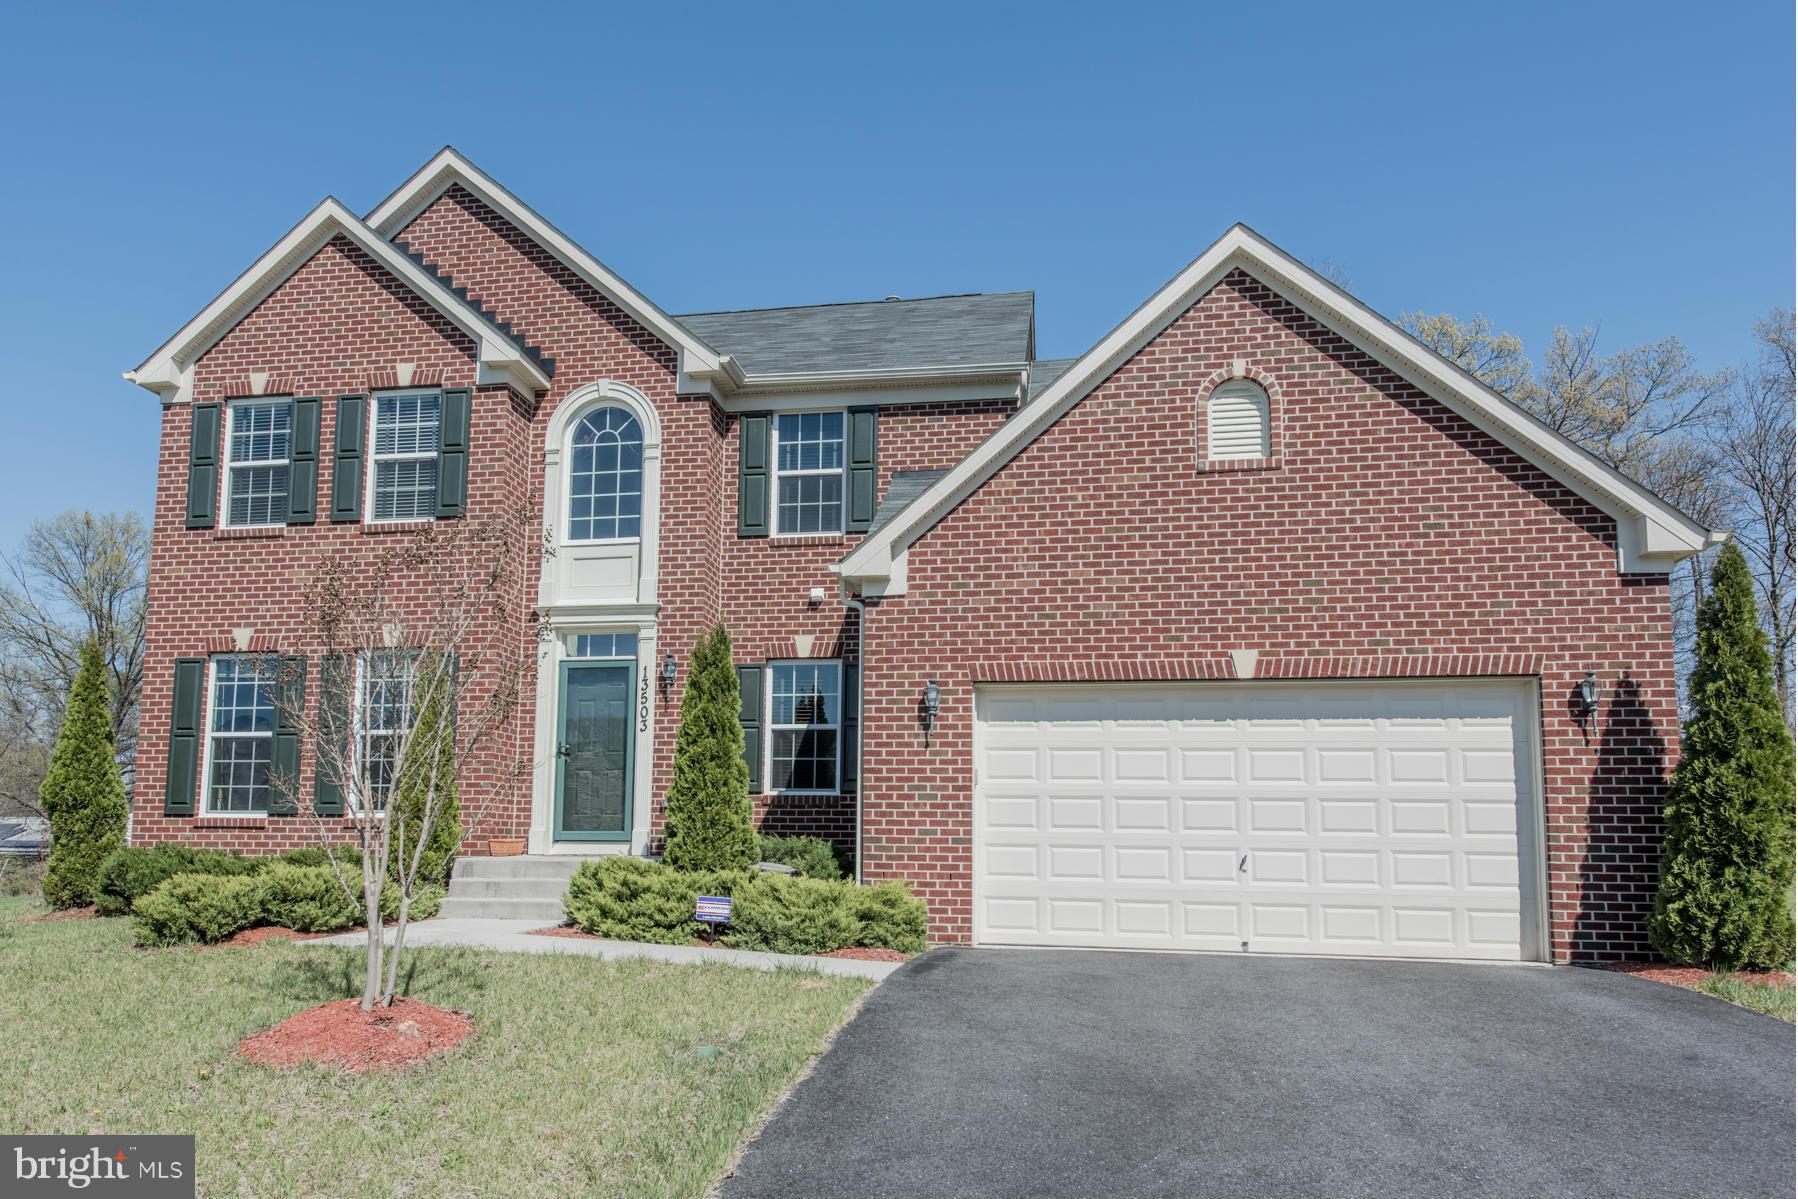 13503 BERMINGHAM MANOR DRIVE, LAUREL, MD 20708